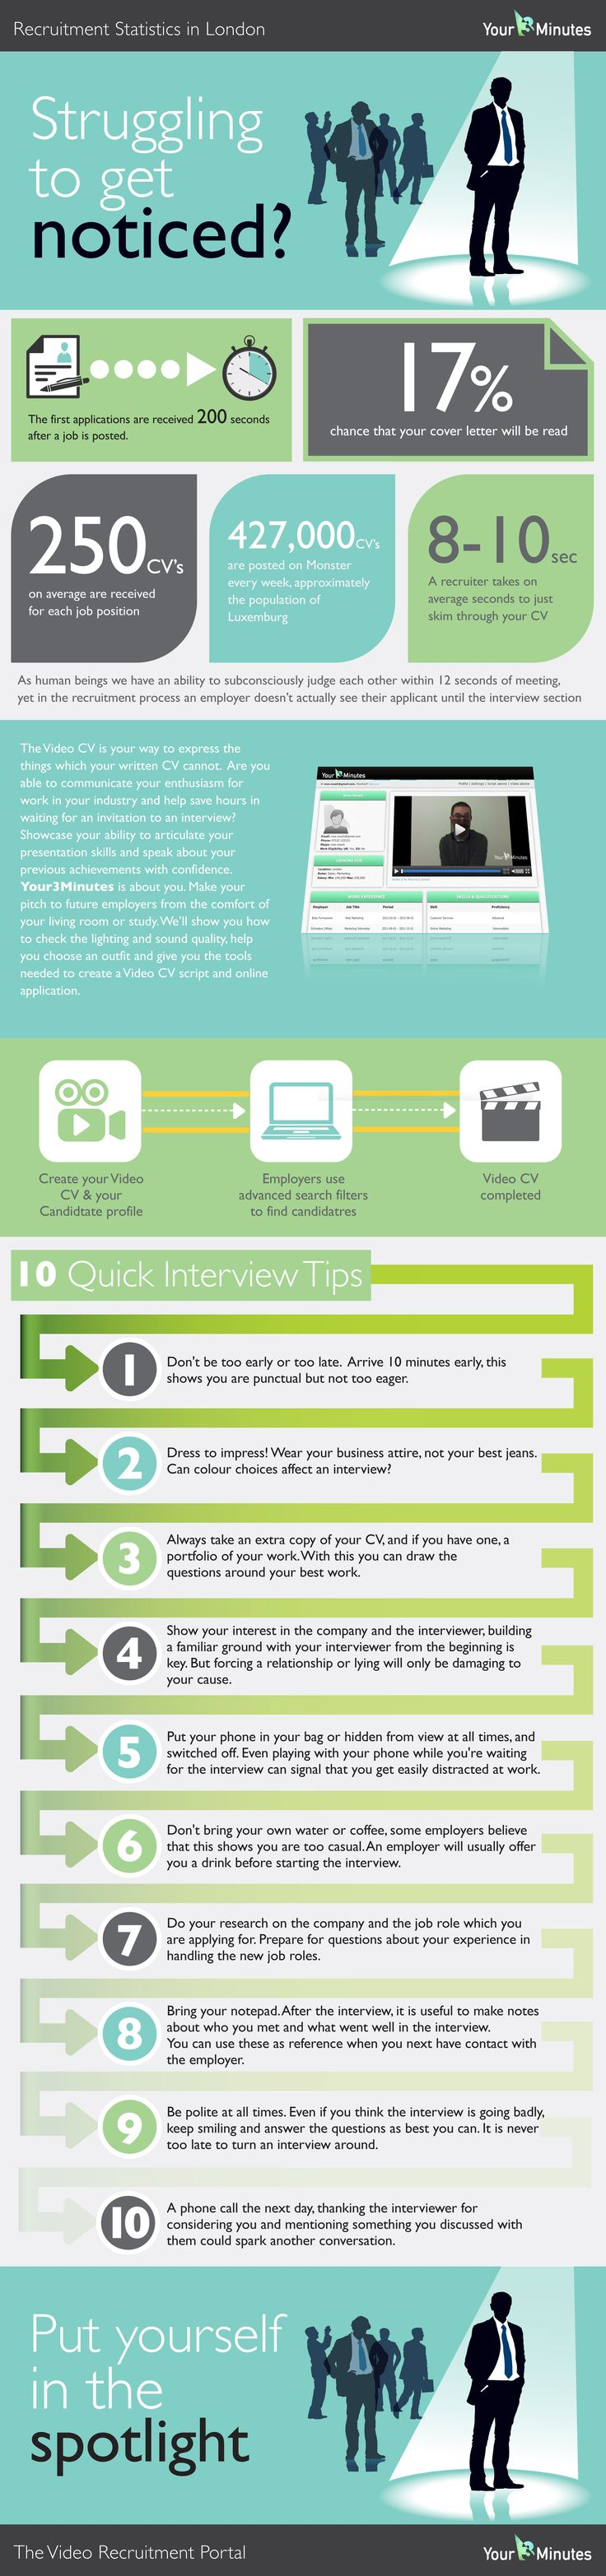 Recruitment Statistics and our Top 10 Interview Tips by Your3Minutes, visit www.your3minutes.com to make your Video CV today!